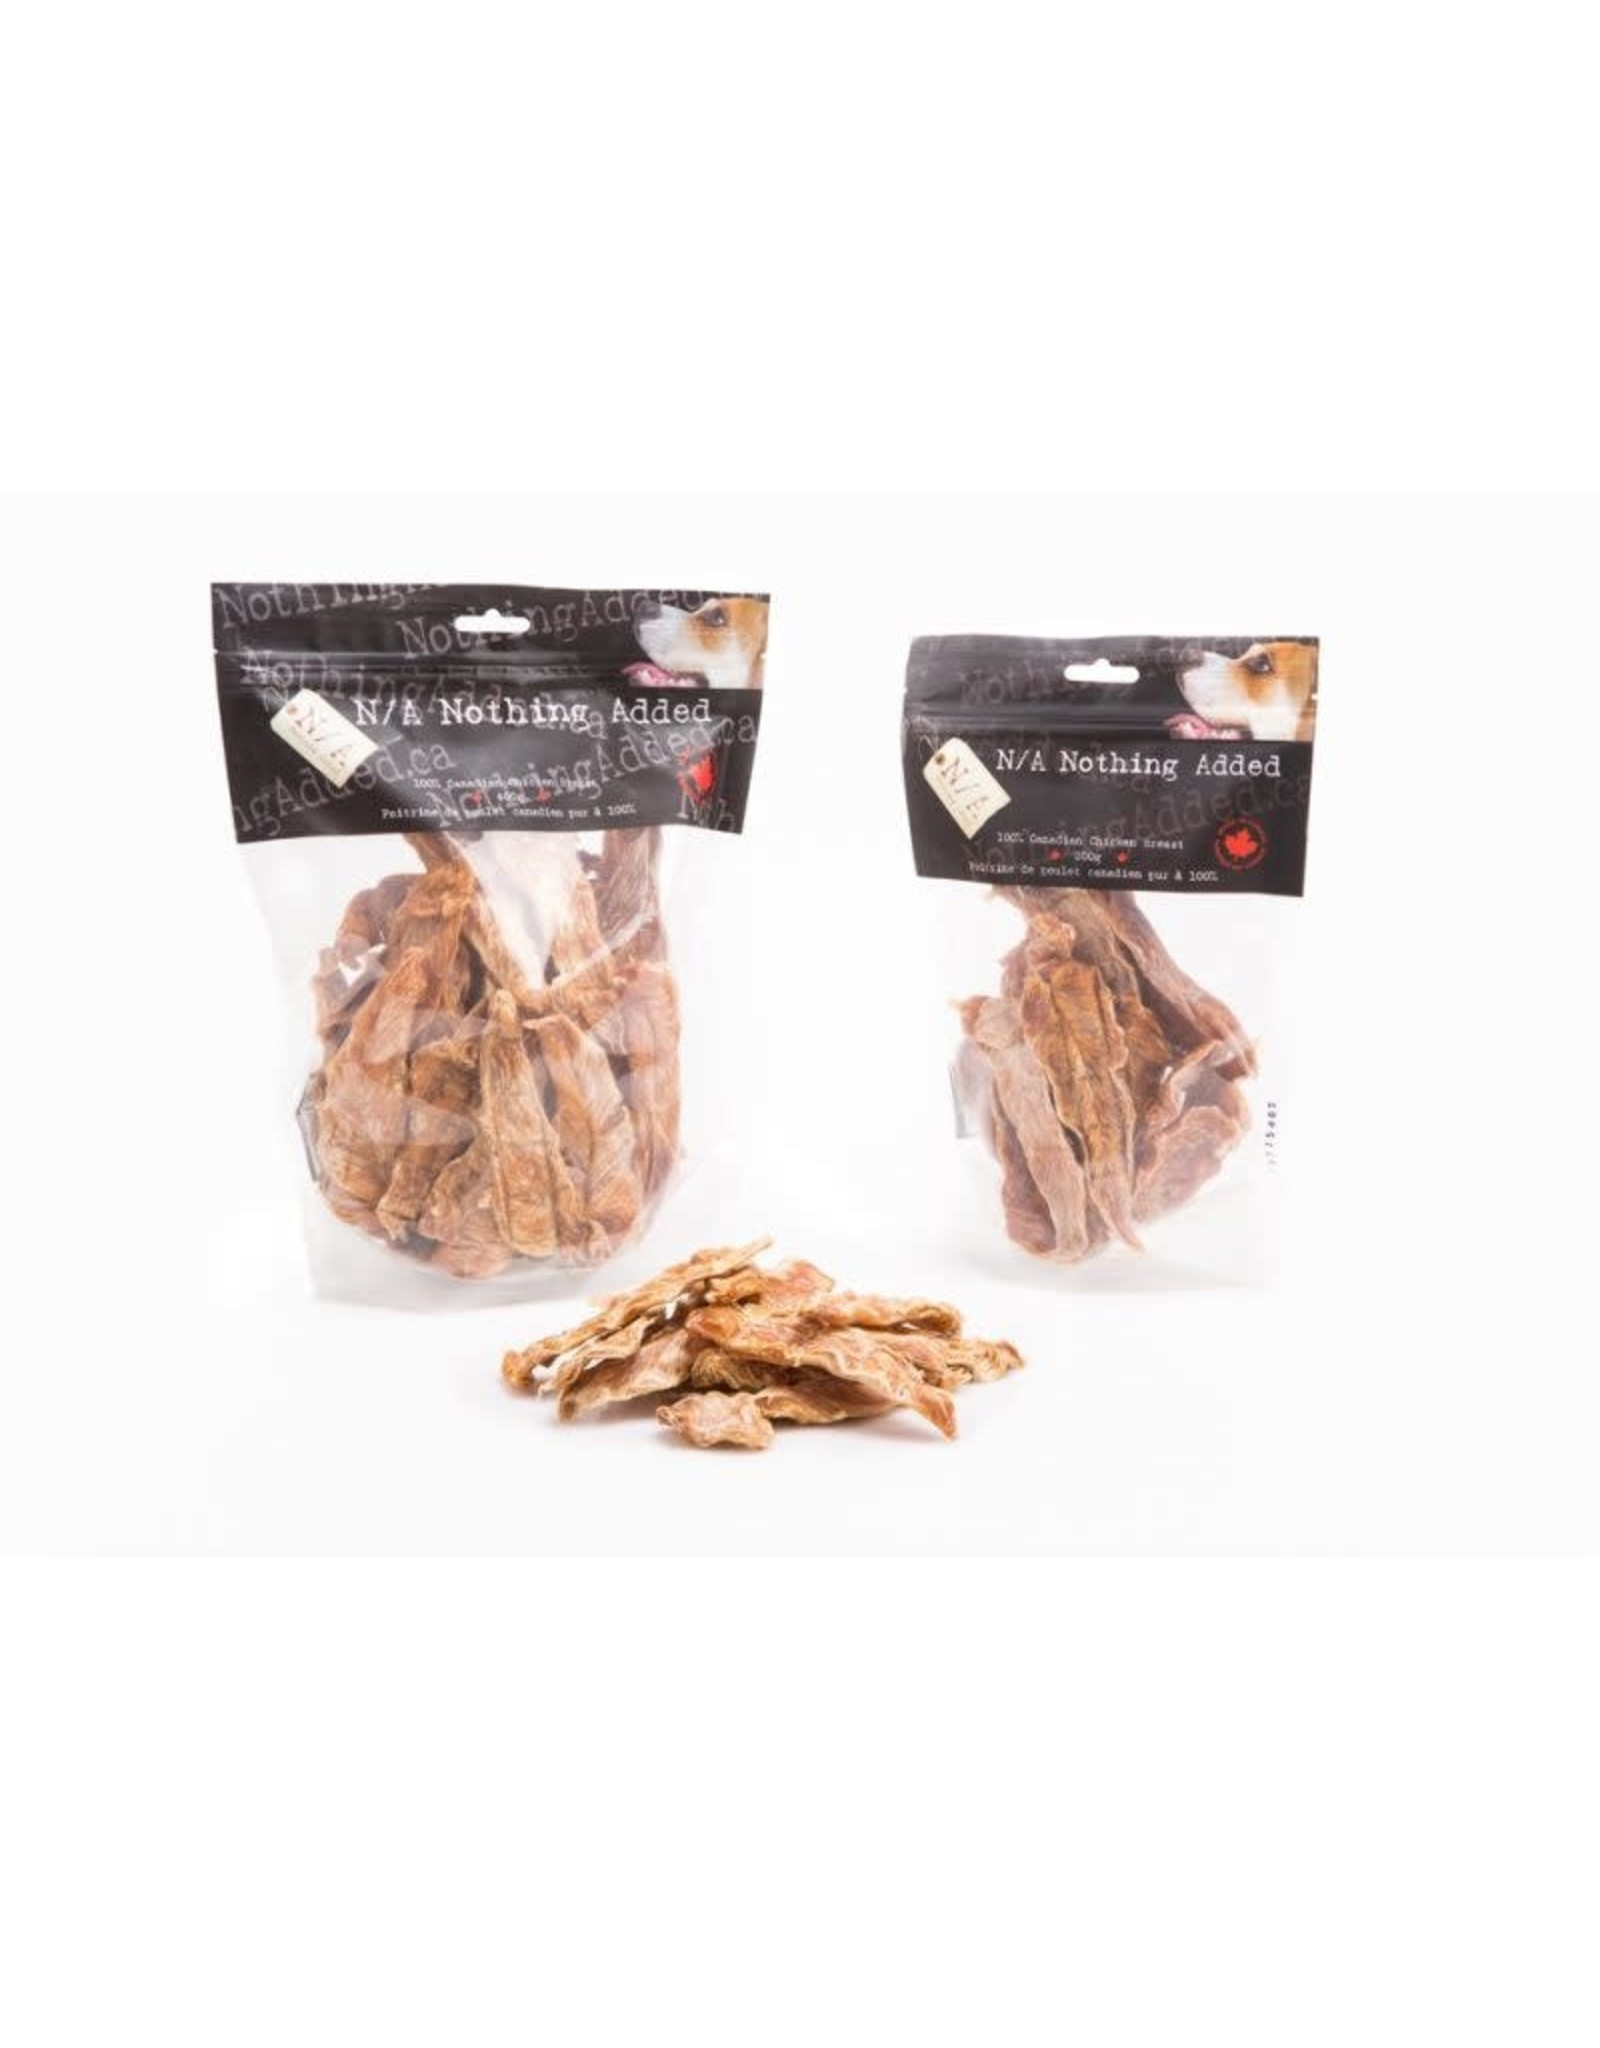 Nothing Added Nothing Added Chicken Breast 200g